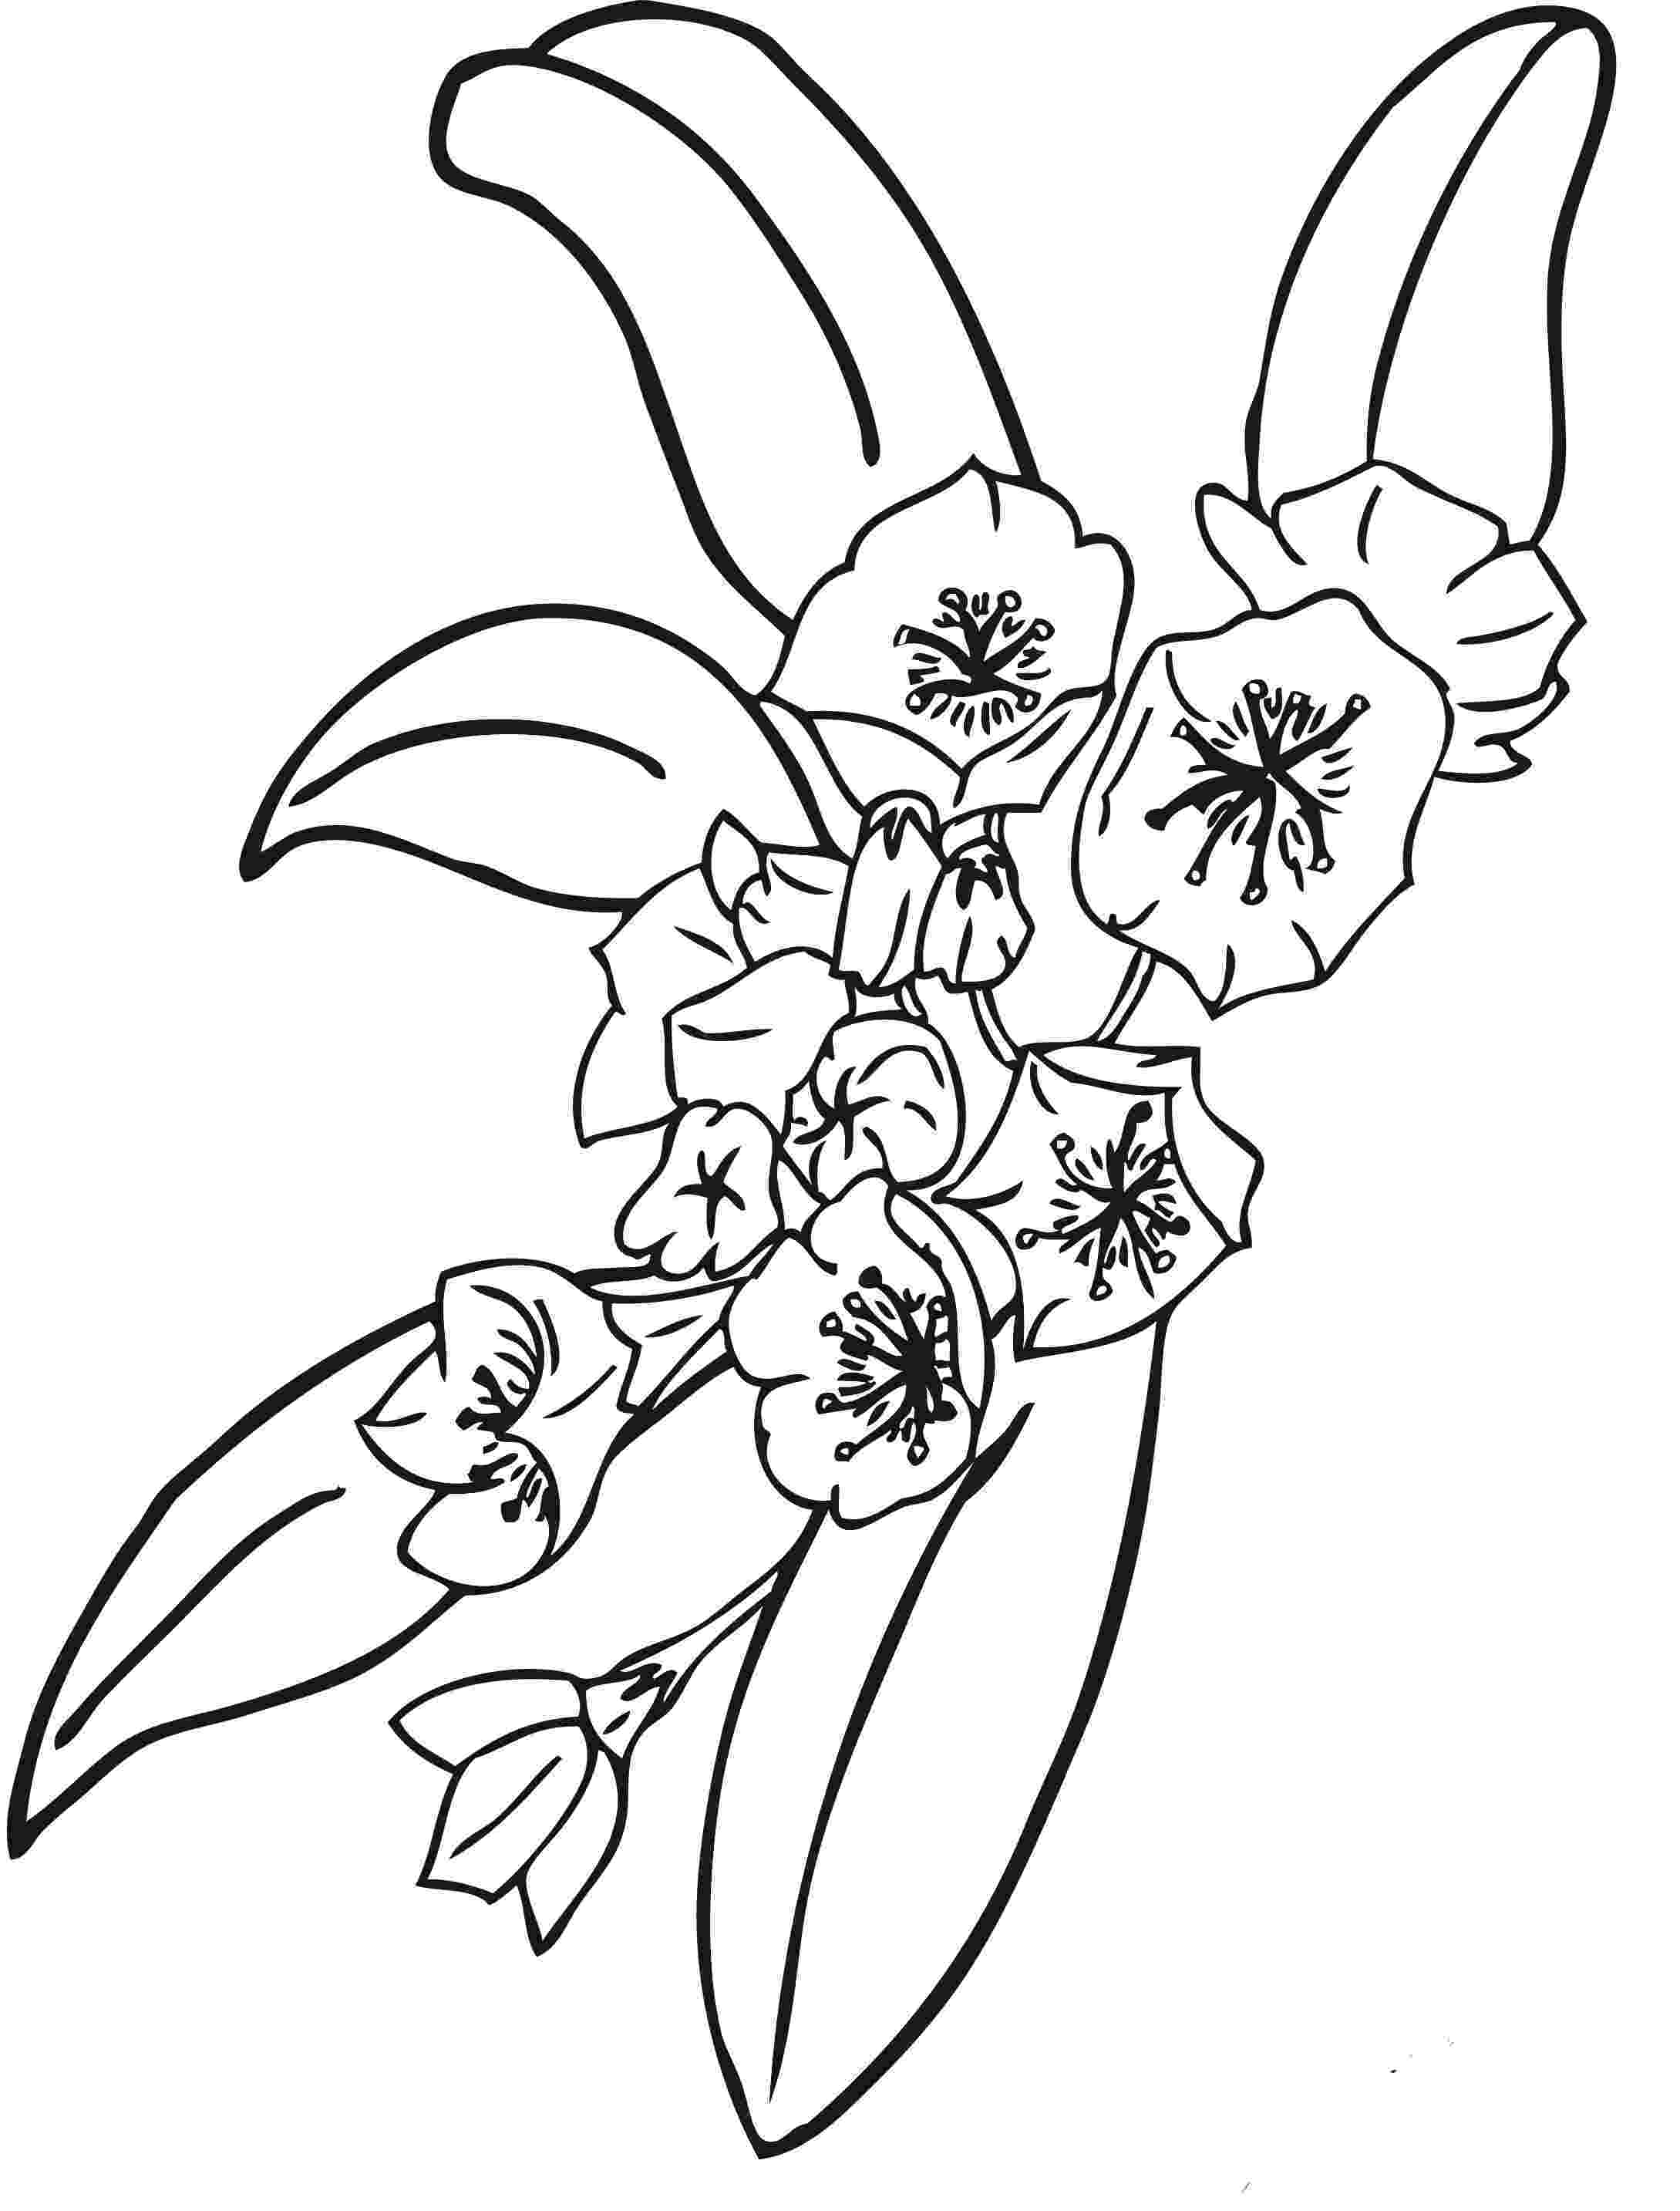 flower pictures to print and color spring flower coloring pages to download and print for free color to pictures and flower print